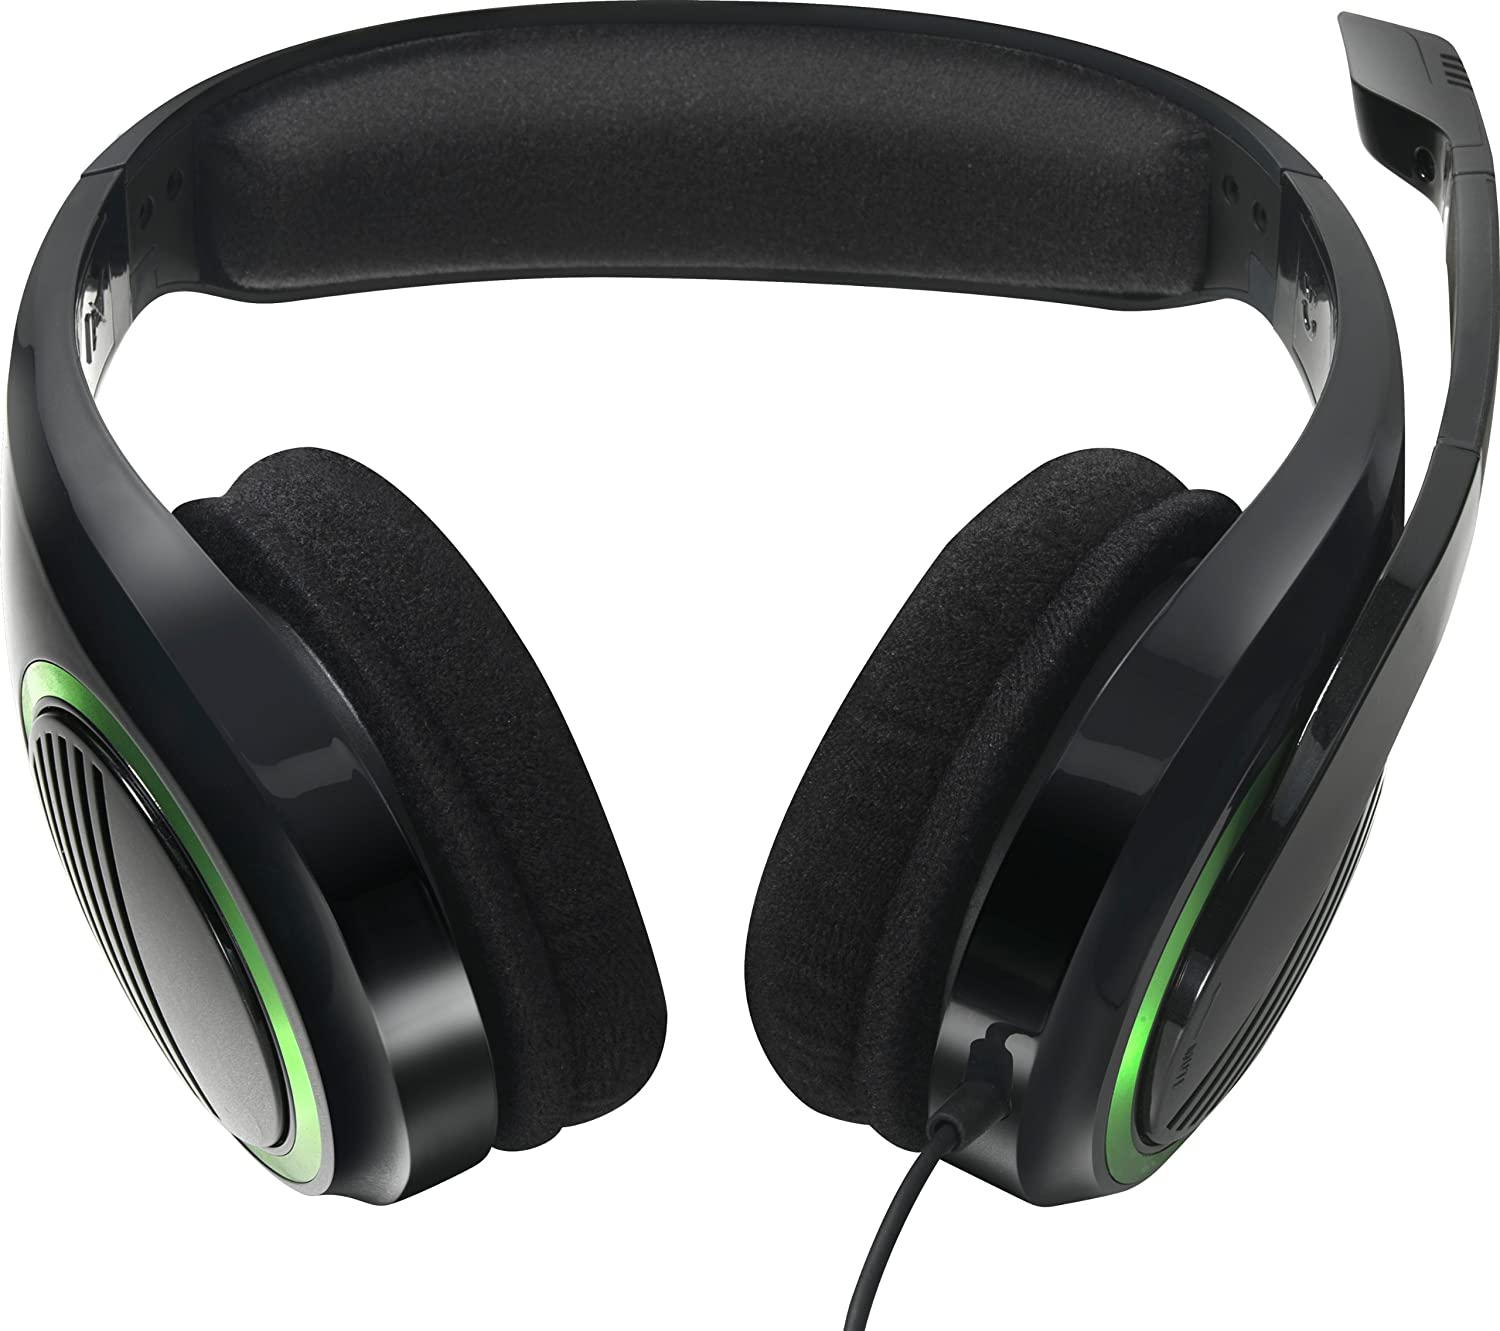 Amazon.com: Sennheiser X320 Xbox Headset (RCA to TV connectors ...